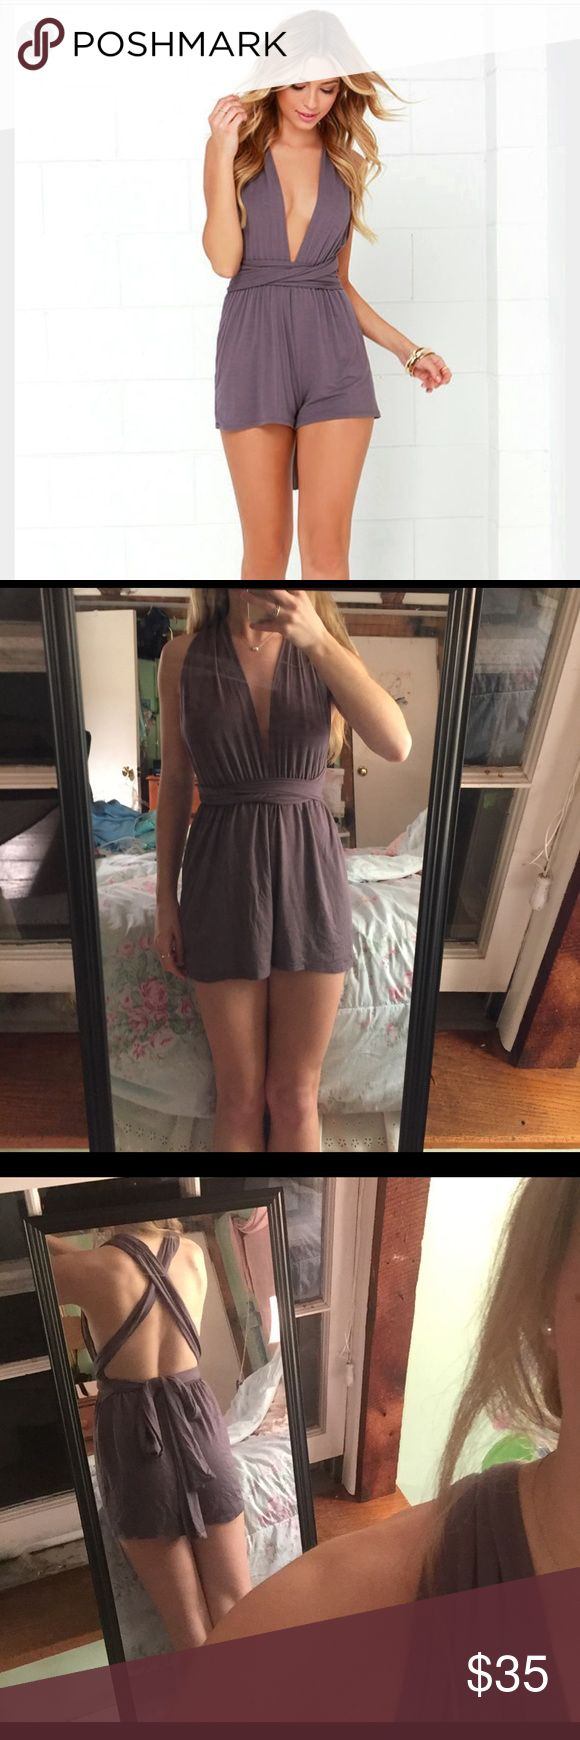 Lulu's Multi Way Romper Super comfortable multi way romper from Lulu's has never been worn! Can be worn in a variety of ways as shown on the Lulu's website. Deep v in front, perfect for  going out. Bought from another posher but decided the color was not flattering on me. For reference I am 5'2 and 104 lbs, WILL CONSIDER ALL OFFERS! Lulu's Pants Jumpsuits & Rompers